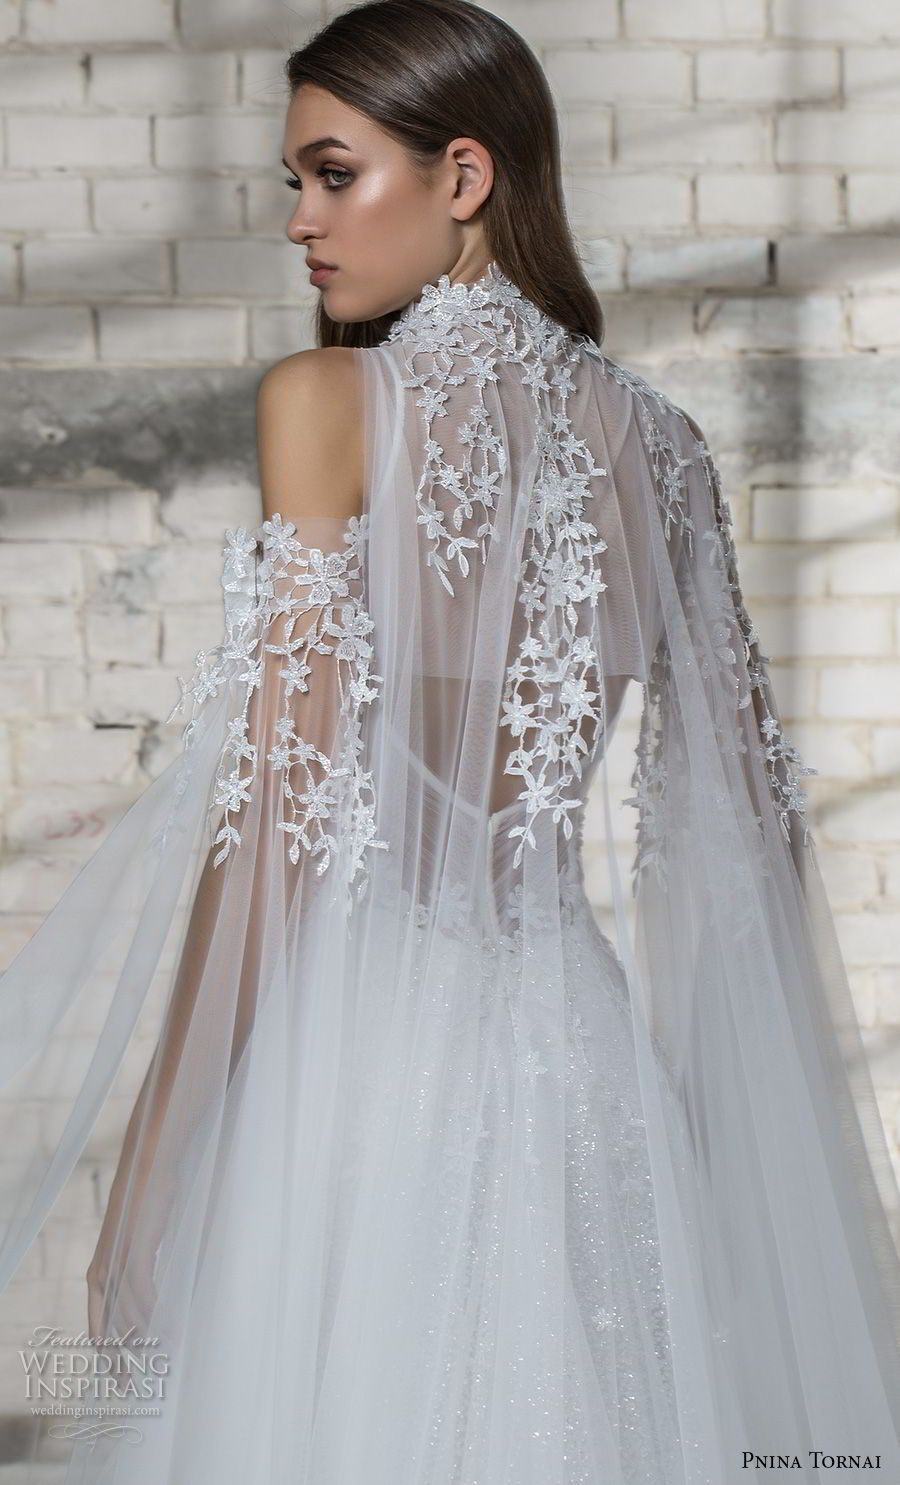 pnina tornai 2019 love bridal cold shoulder illusion high neck deep  sweetheart neckline heavily embellished bodice 5e148d6861c5